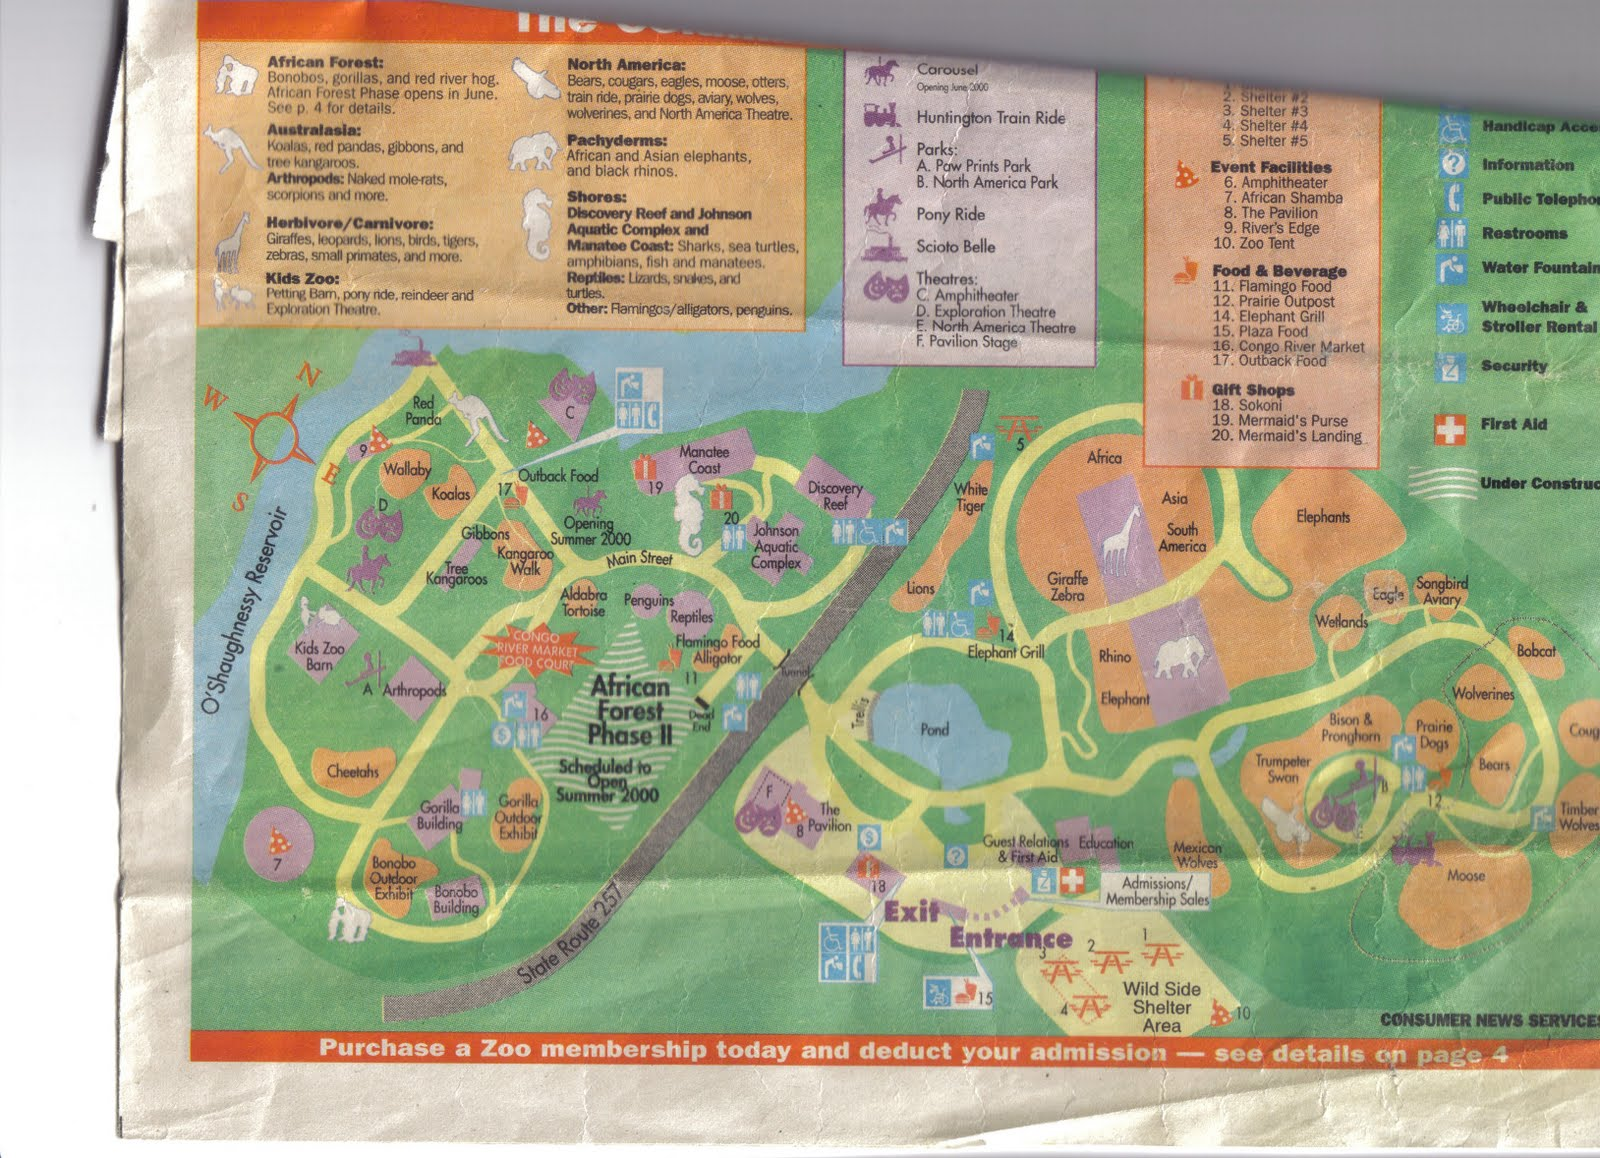 Zoo Tails: Columbus Zoo Map from 2000 on indianapolis street map, muirfield village golf course map, kings island map, downtown columbus map, columbus downtown area, indiana state fairgrounds map, columbus suburbs, cedar point map, columbus city hall, carlsbad lagoon map, dallas museum of art map, columbus neighborhood map, del mar fairgrounds map, memphis cook convention center map, columbus skyline, columbus at night, printable d.c. metro map, columbus ohio, columbus water park, zoos in florida map,